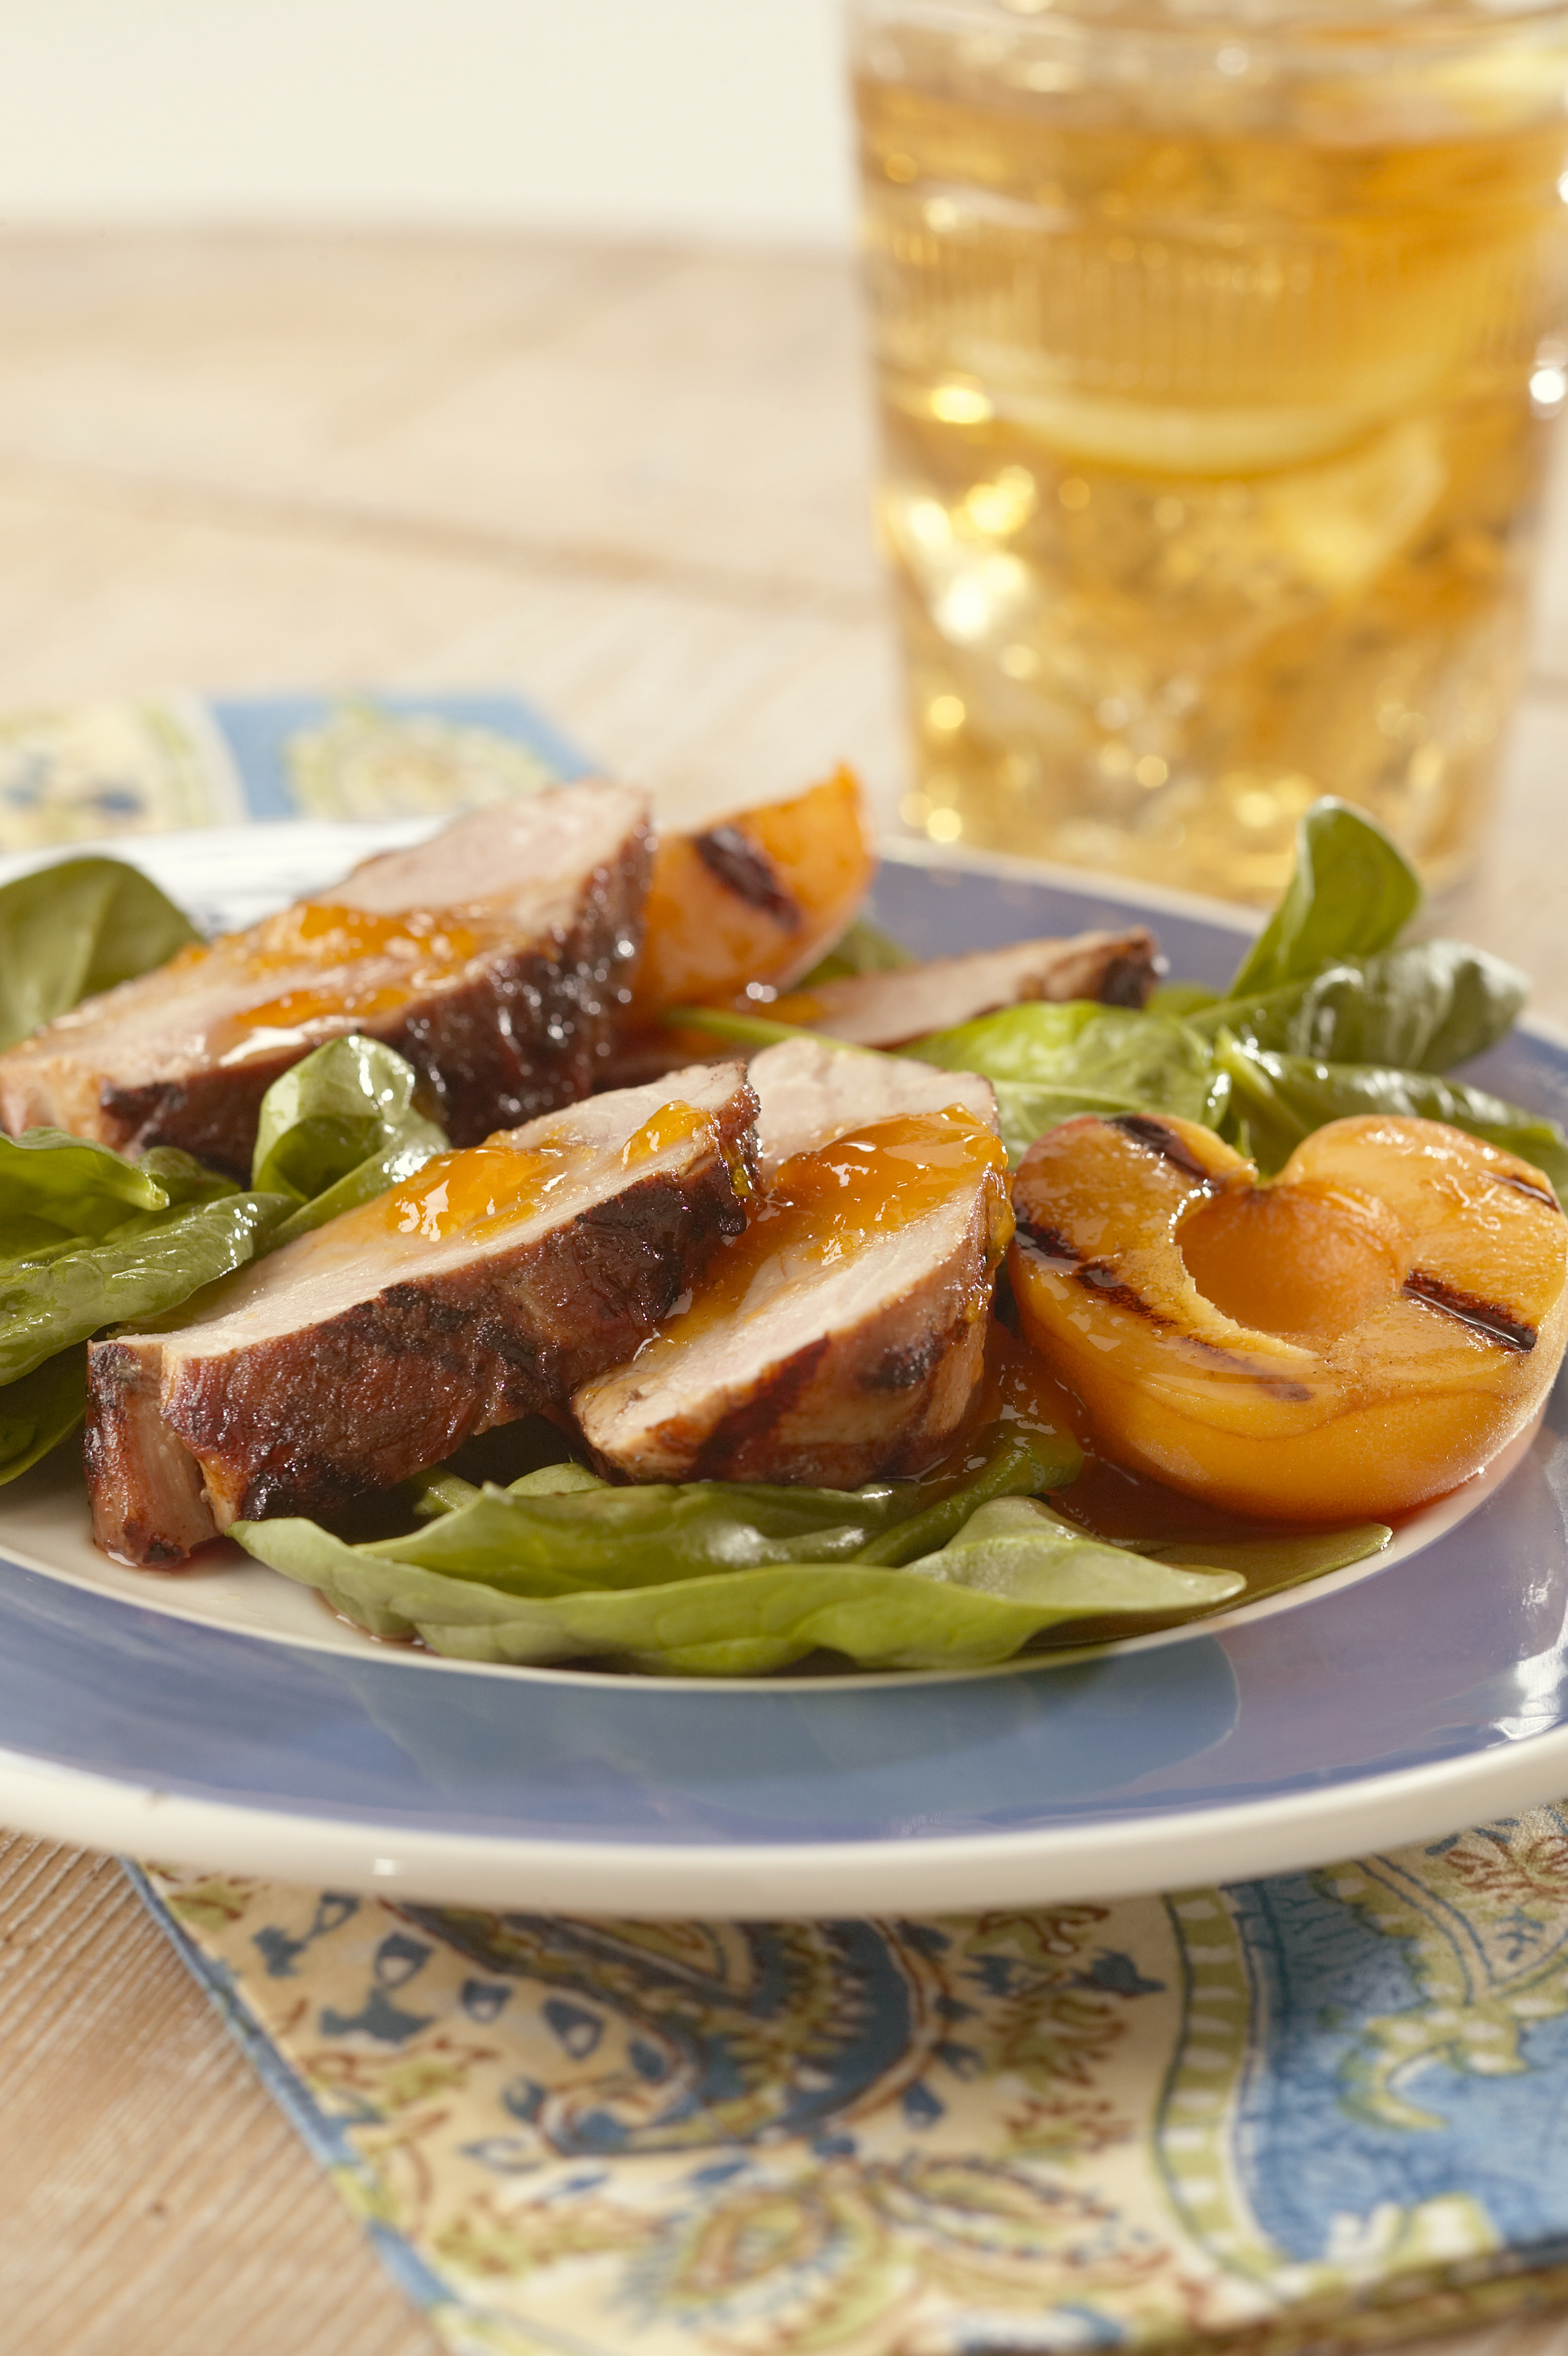 Asian Spiced Pork Tenderloins with Apricot Sauce